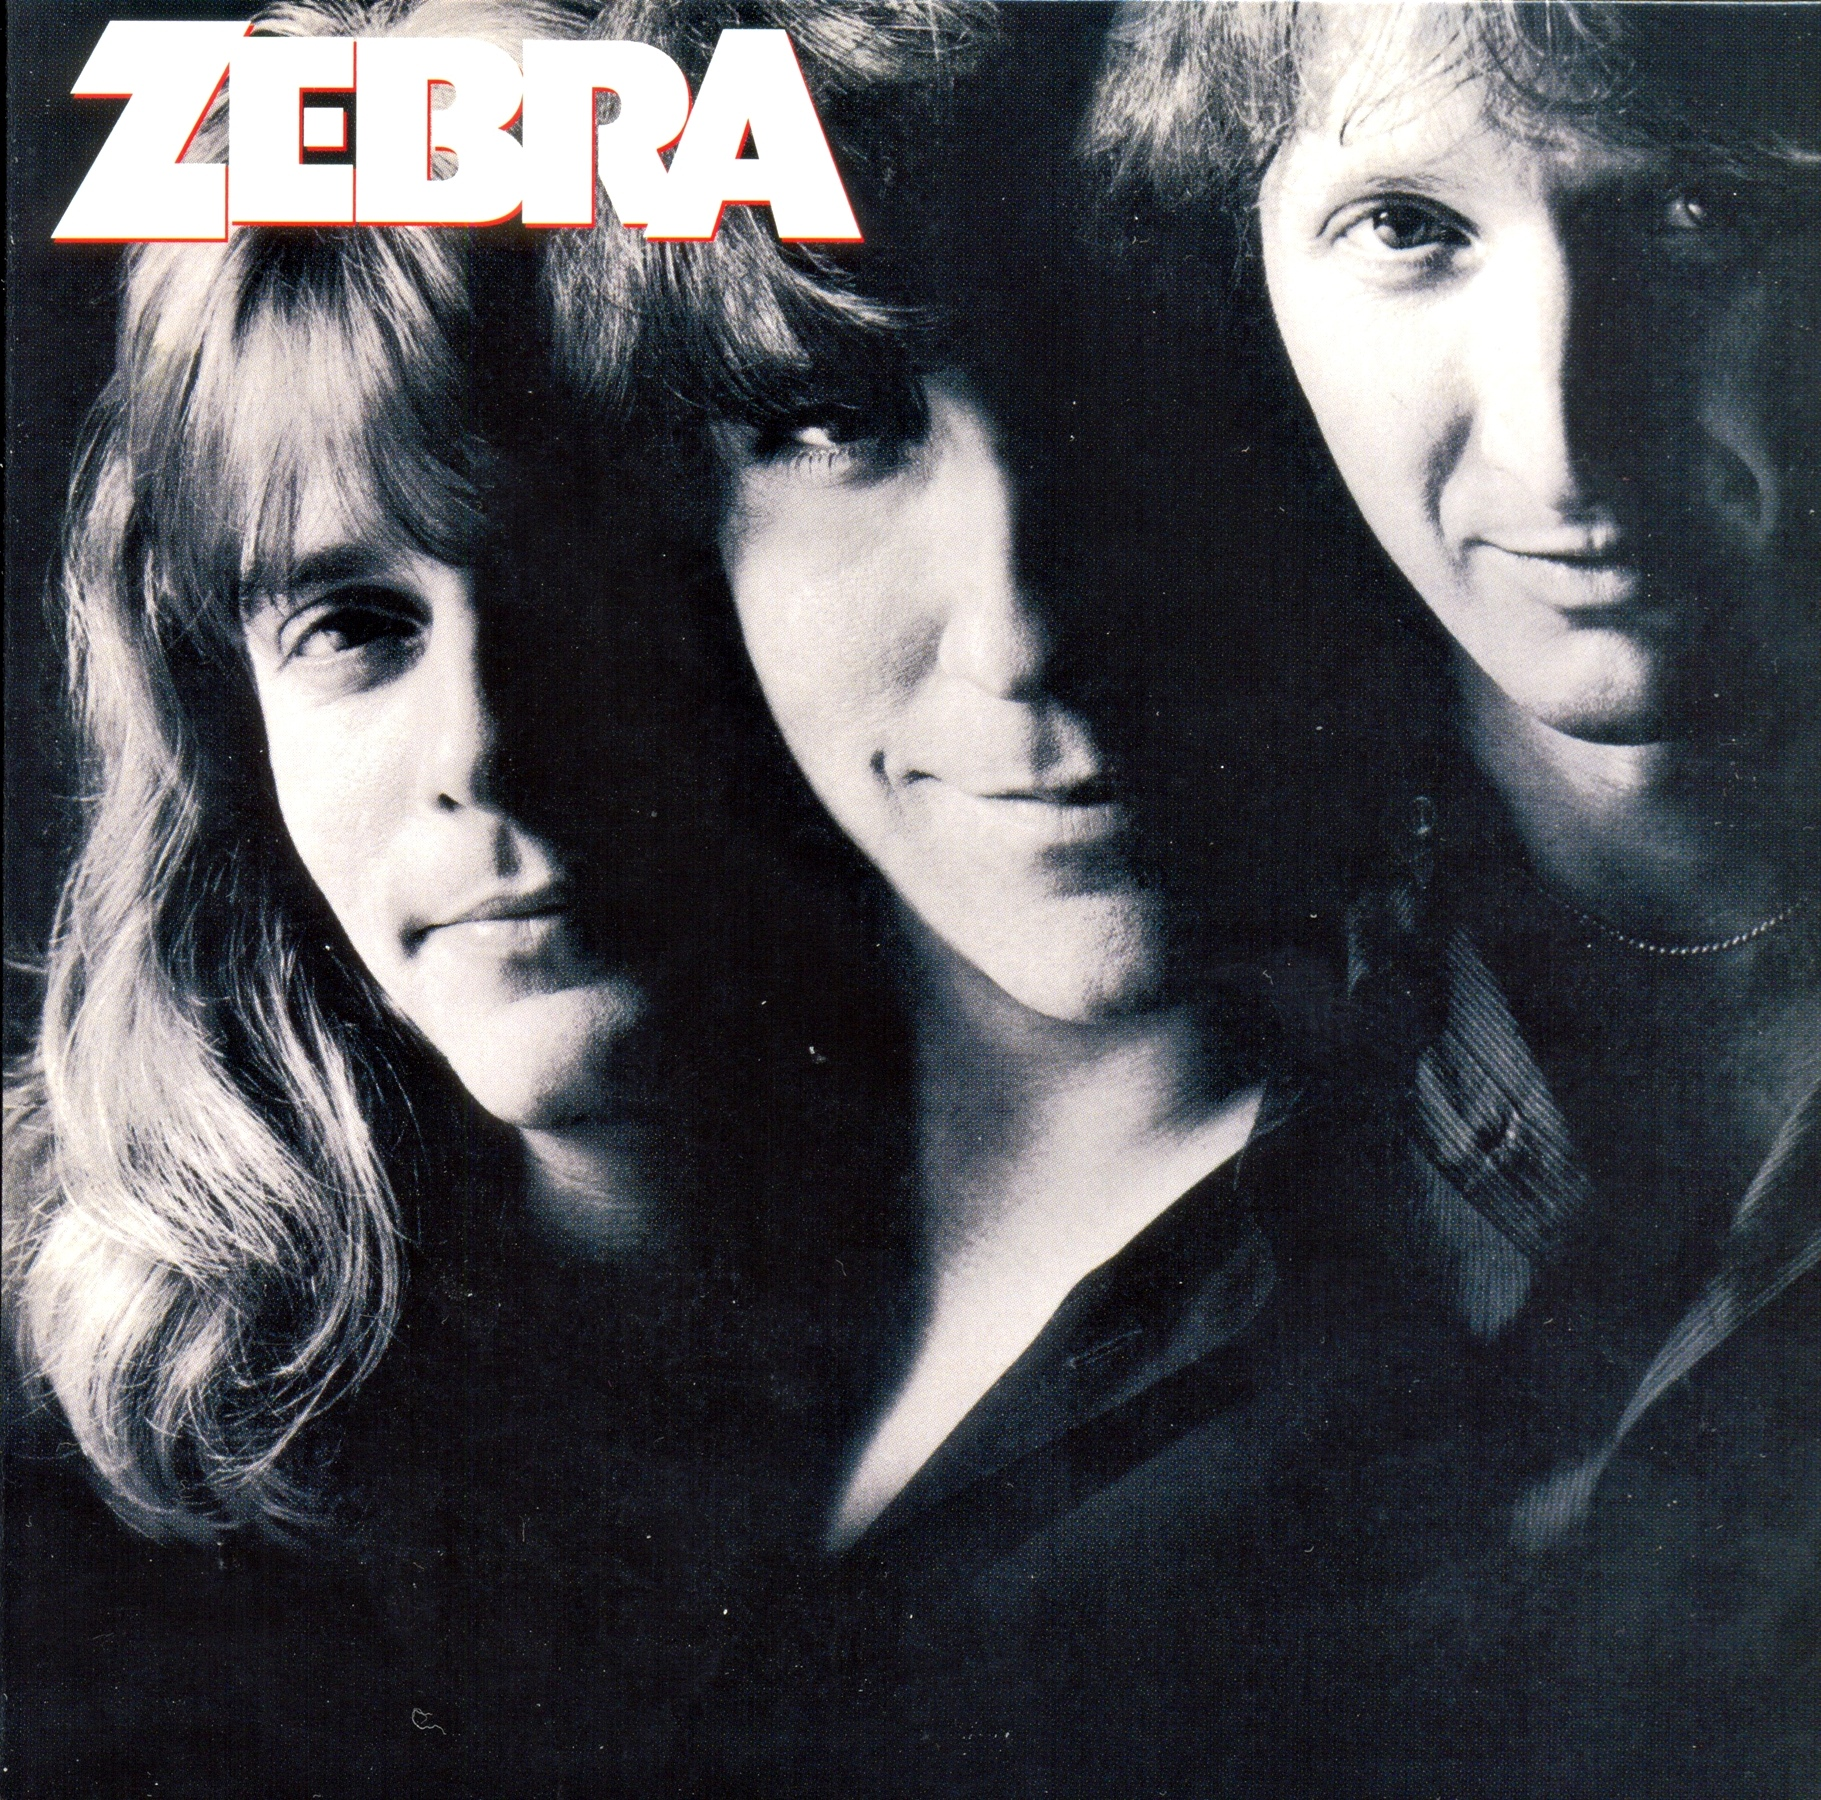 Zebra - Take Your Fingers From My Hair